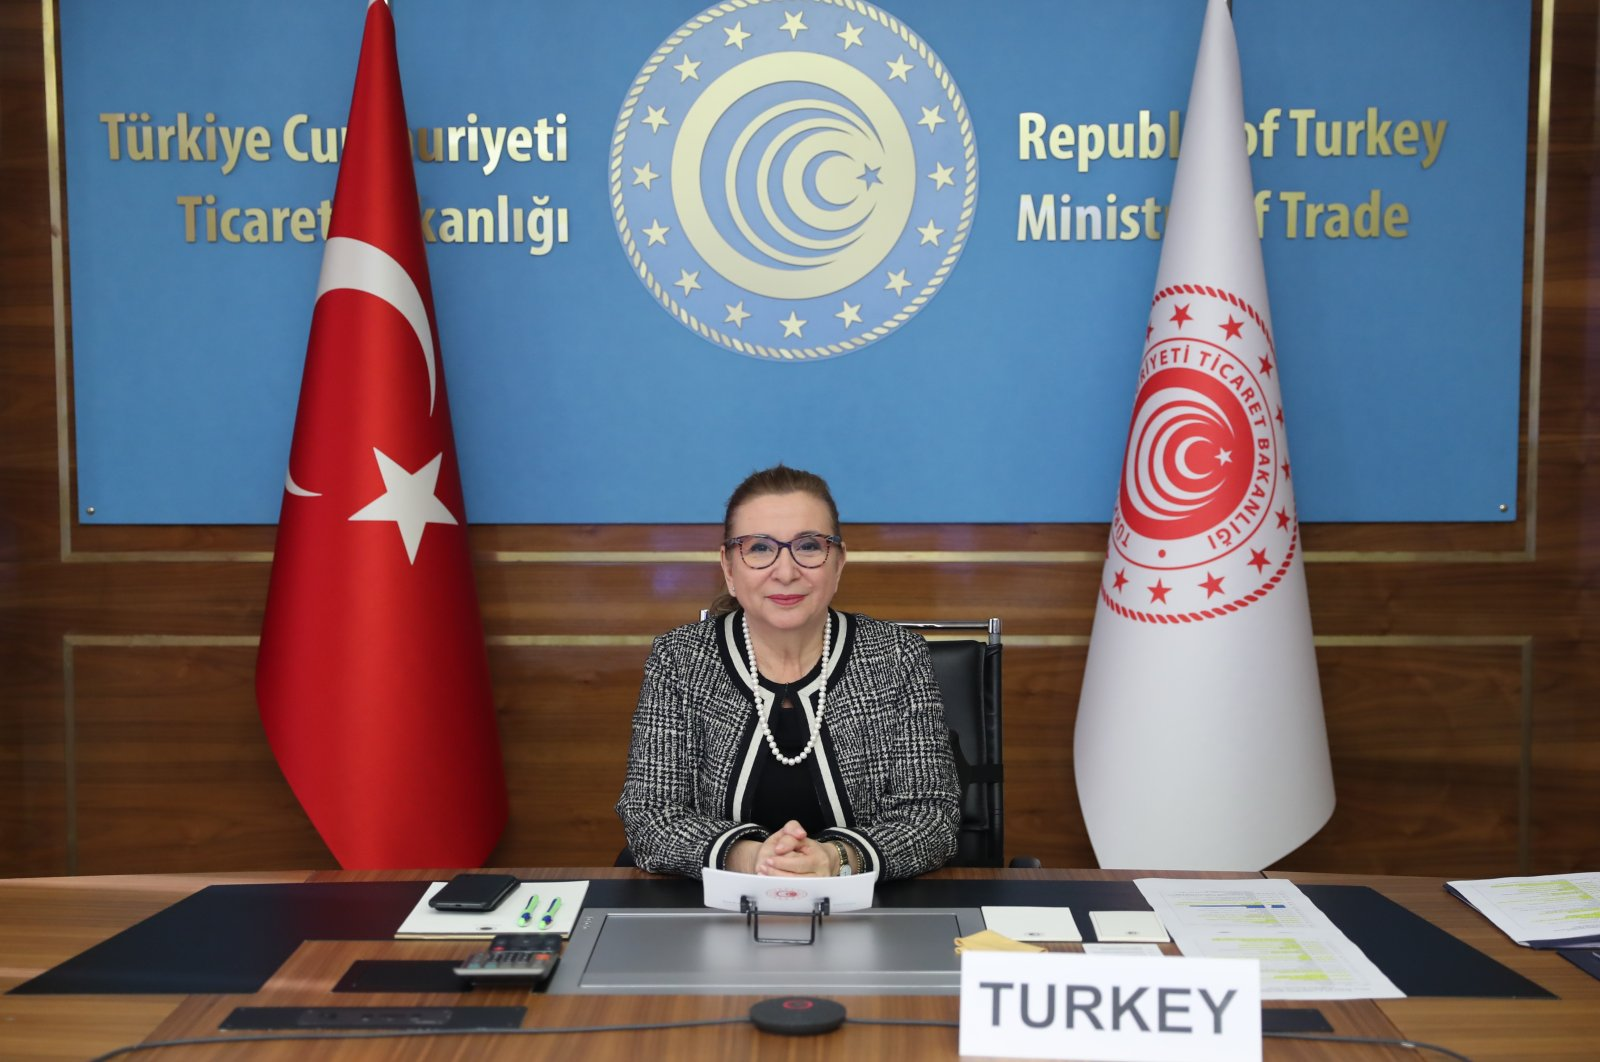 Trade Minister Ruhsar Pekcan sits at a desk during the virtual World Trade Organization (WTO) Unofficial Ministeries Meeting hosted by the Swiss government, in the capital Ankara, Turkey, Jan. 30, 2021. (AA Photo)